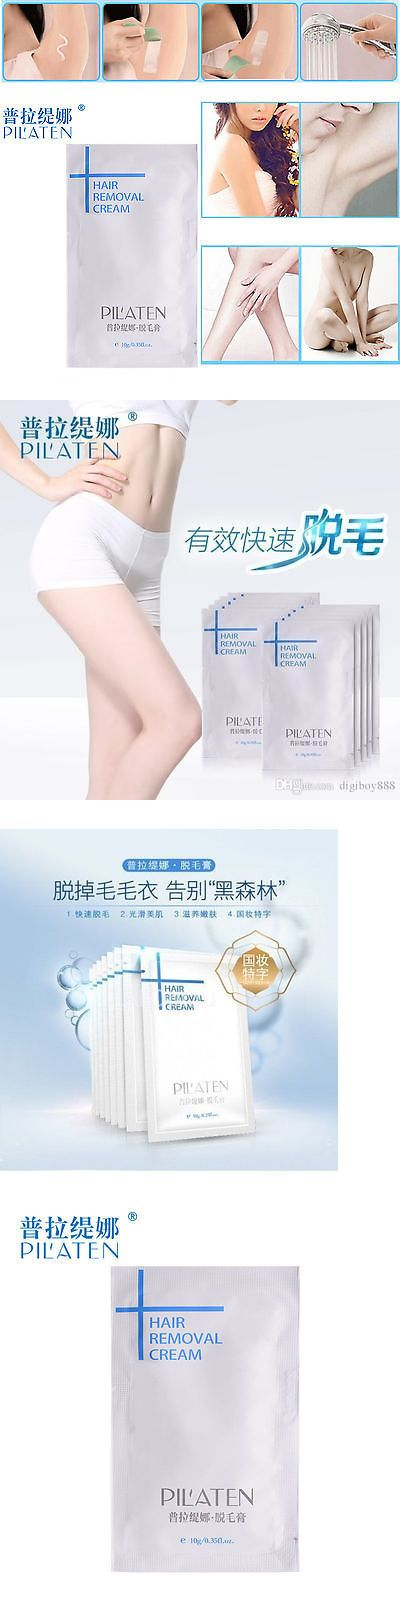 Hair Removal Creams and Sprays: 10G Pilaten Natural Hair Removal Depilatory Cream Painless - Free Us Shipping!! -> BUY IT NOW ONLY: $194.99 on eBay!